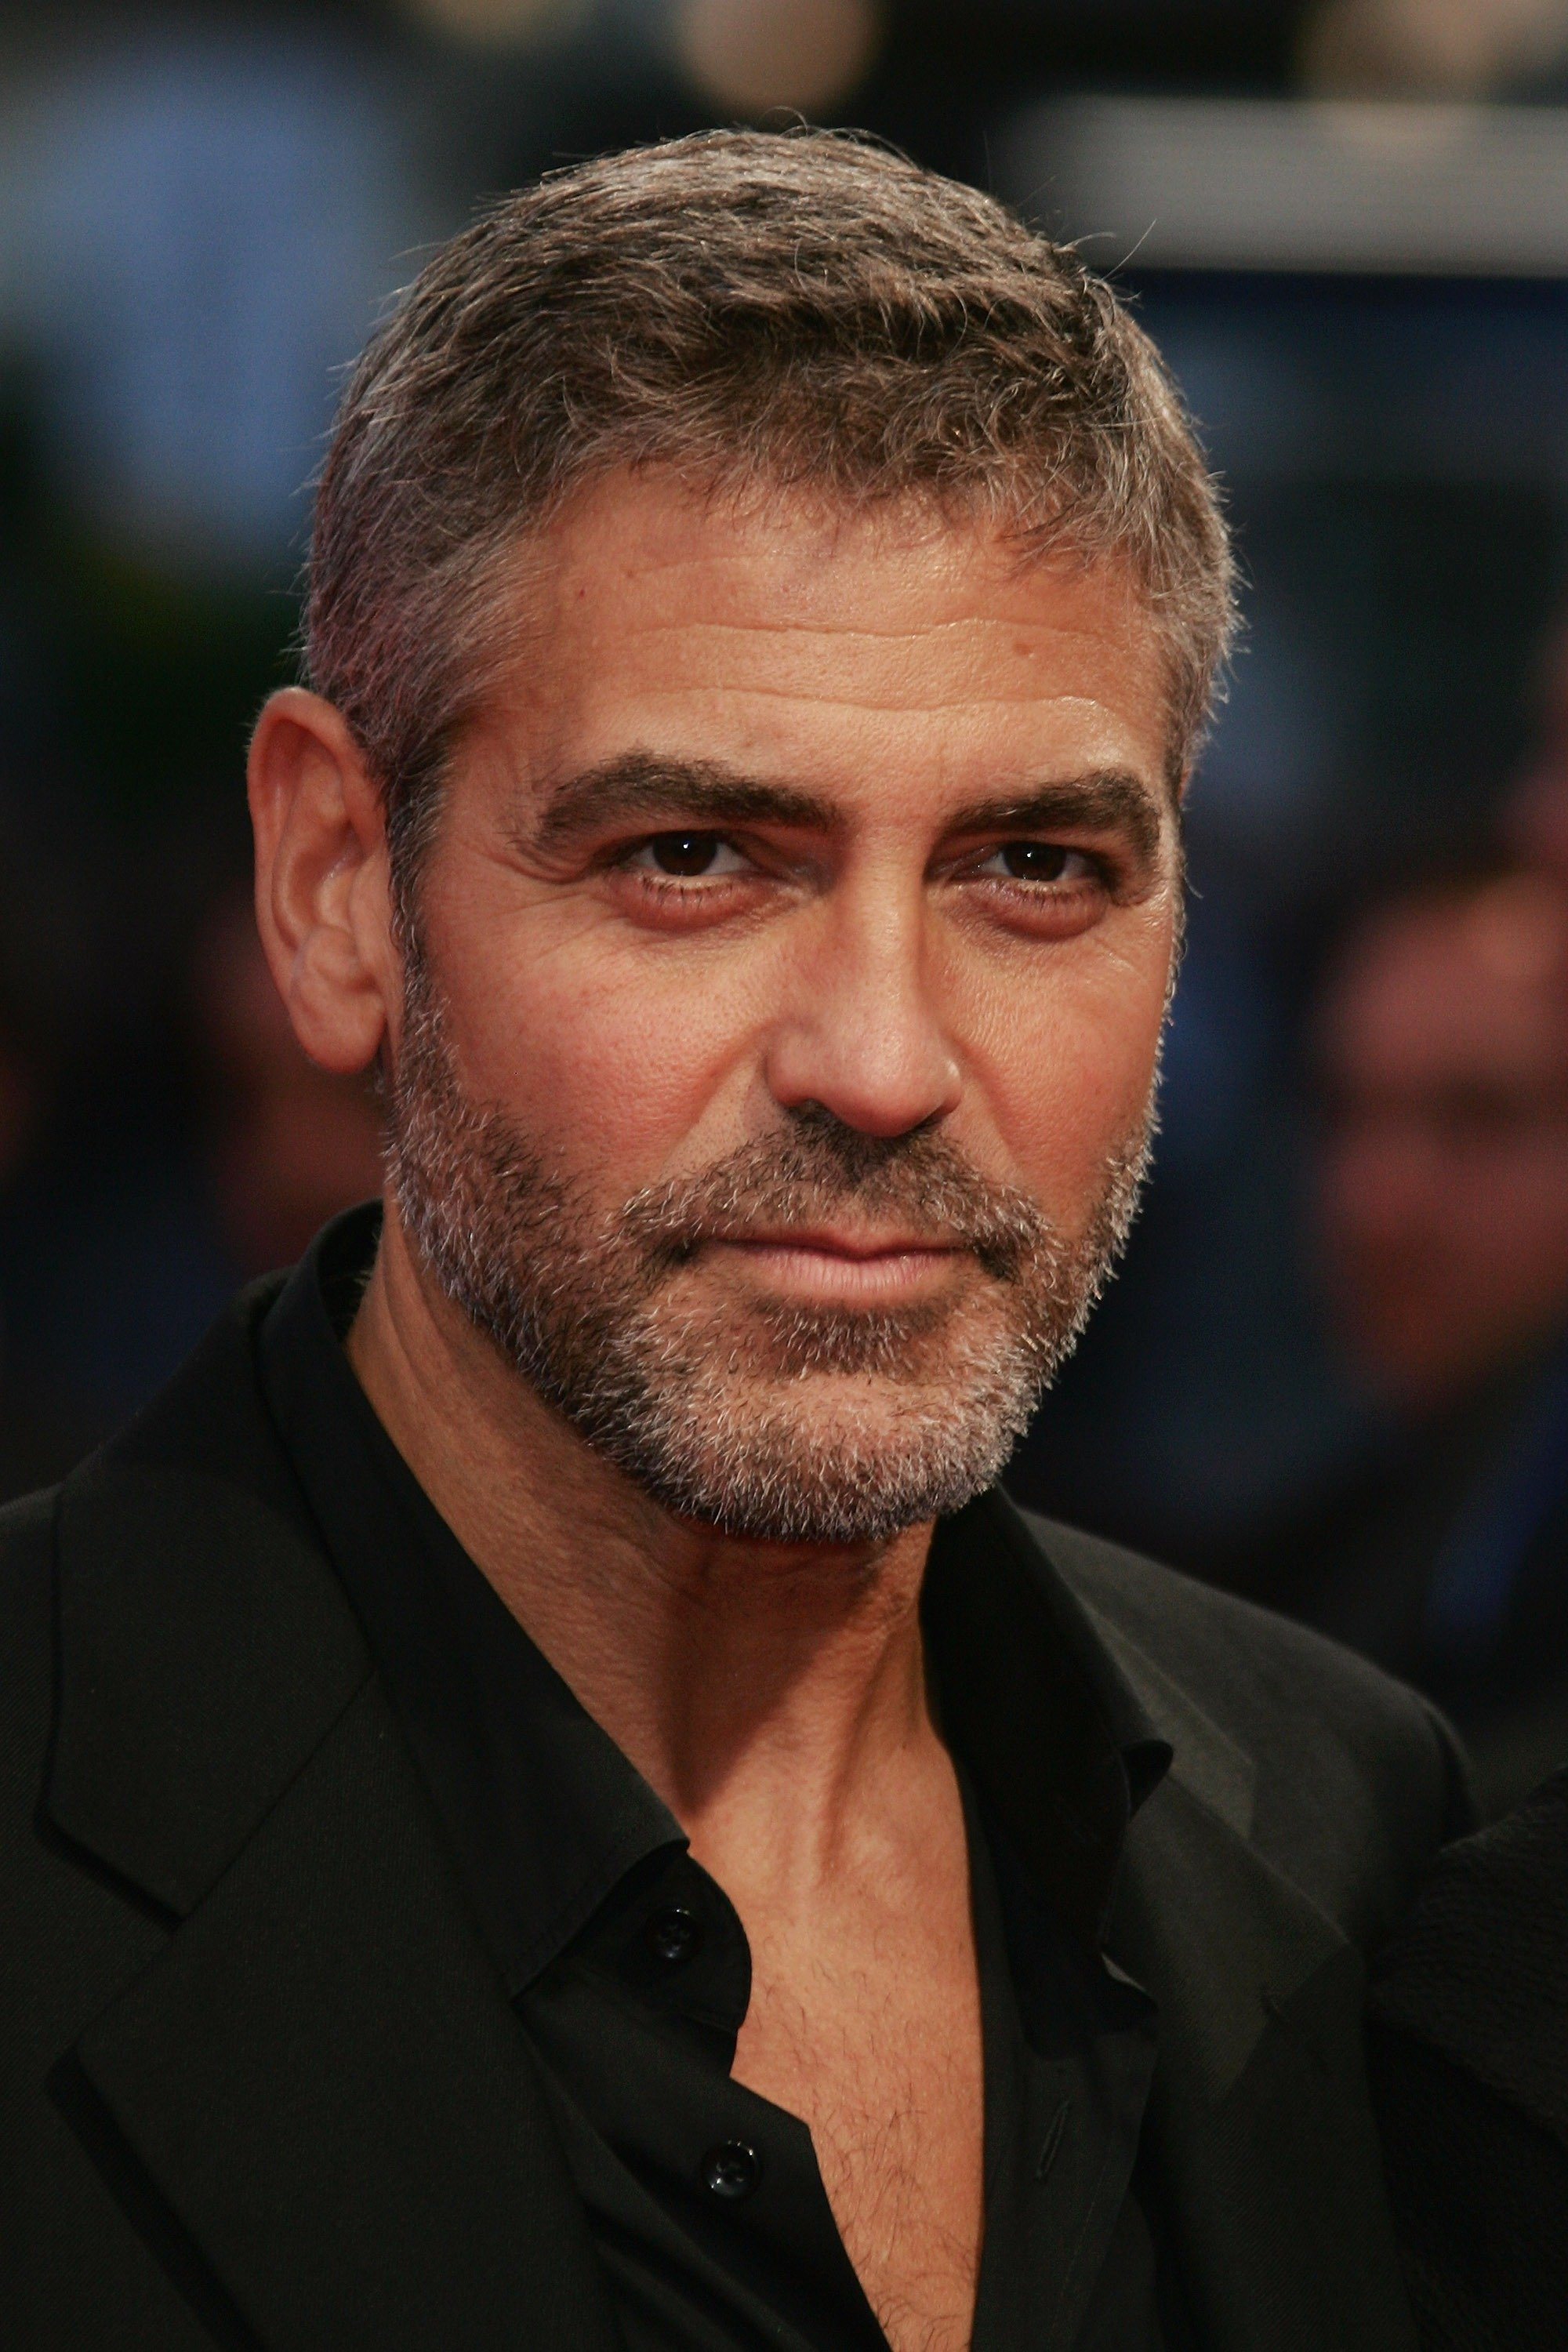 Image Credits: Getty Images | George Clooney